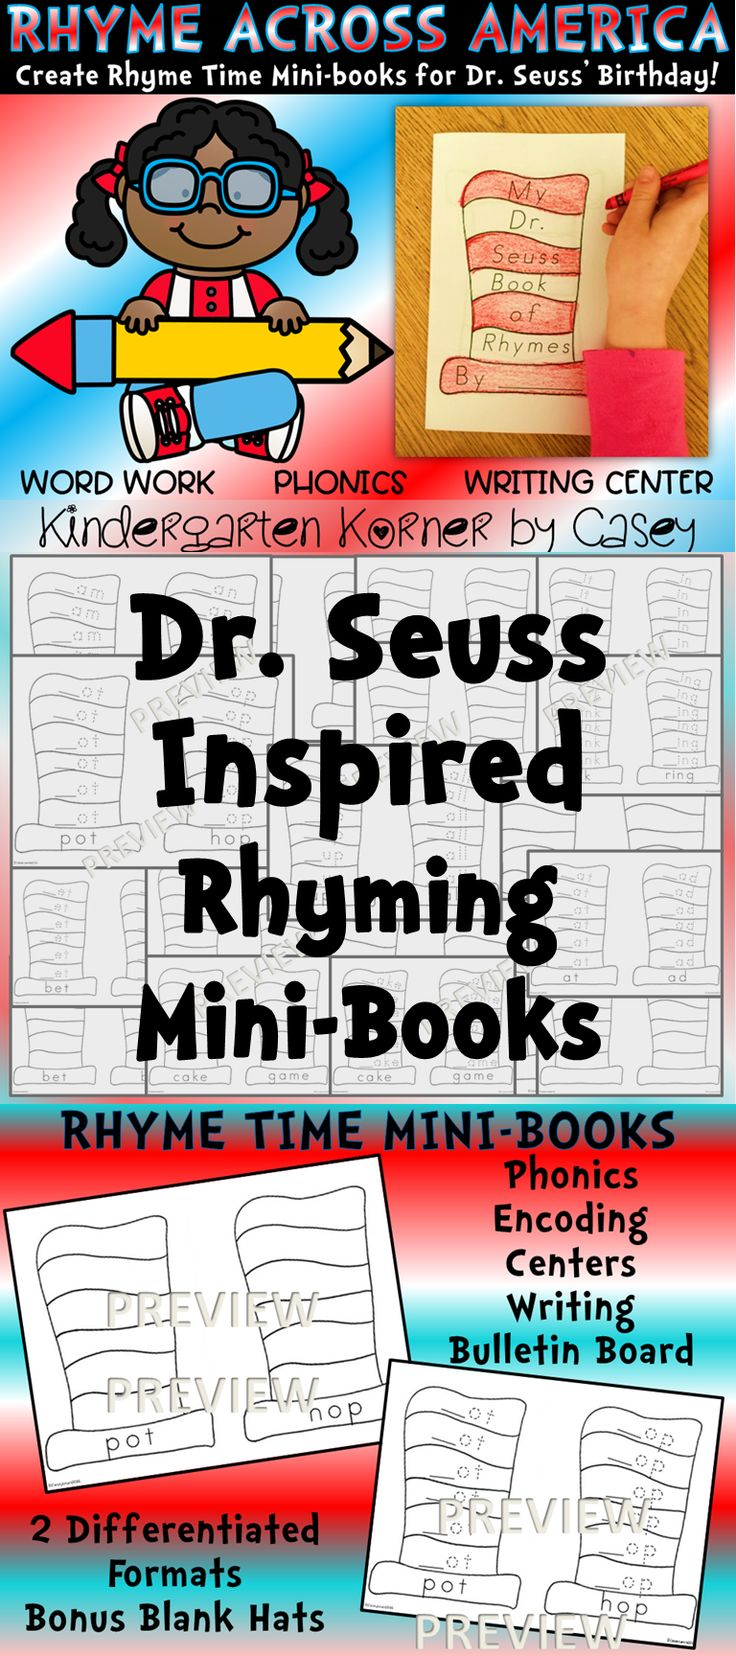 Rhyme and Read Across America! Celebrate the legacy of Dr. Seuss by having your students create Rhyme Time Mini-books - A perfect activity for kindergarten and first grade students during Dr. Seuss' birthday week or any time of year. Choose from 4 cover options and two differentiated formats. Great for literacy and writing centers, word work, morning work, or writing workshop!